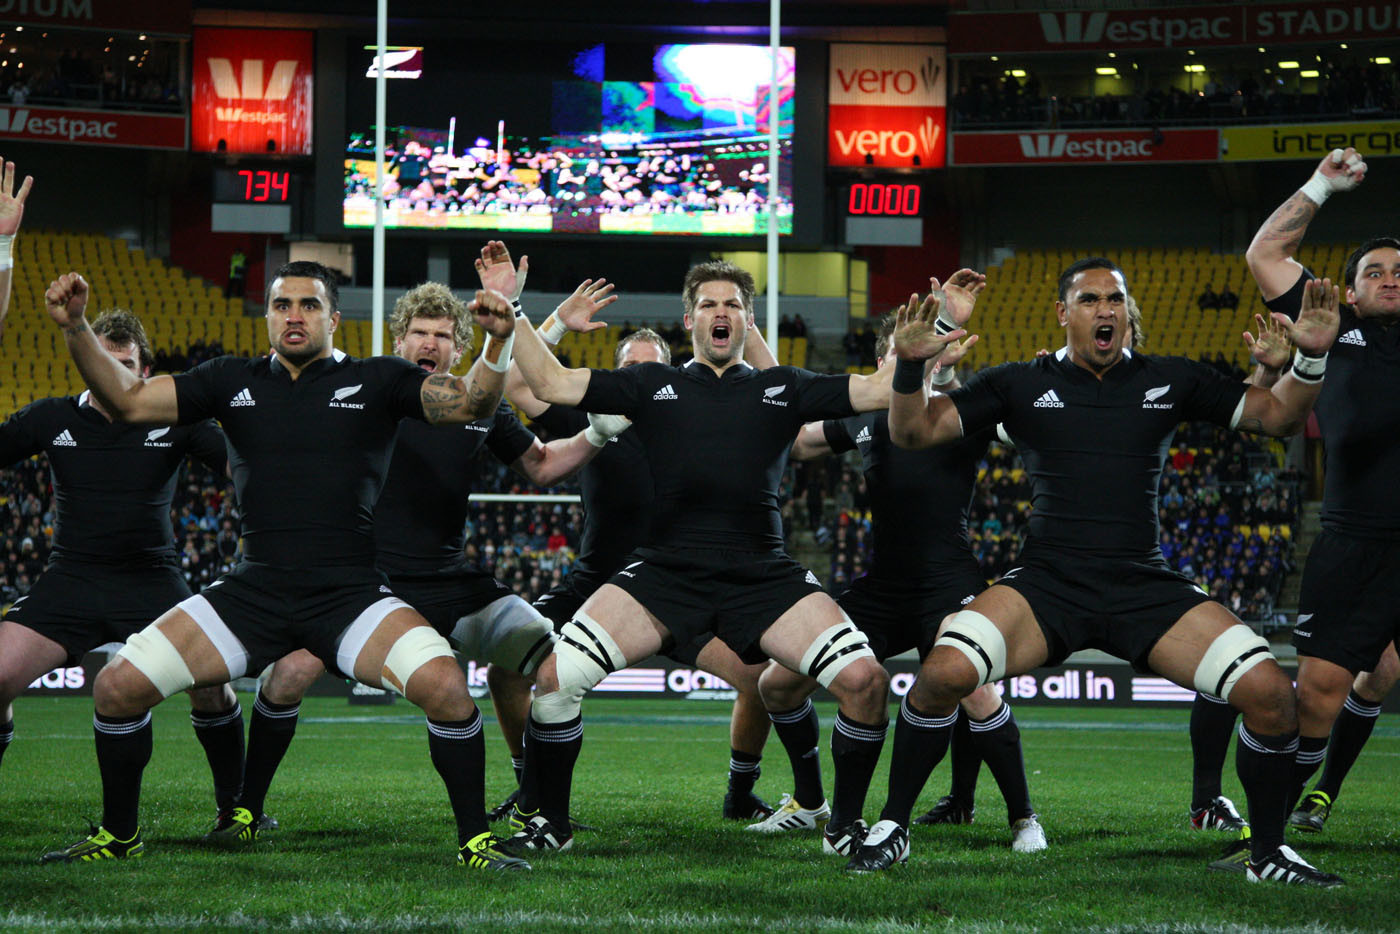 The All Blacks perform the haka in the new jersey before the All Black v South Africa test match at Westpac Stadium, Wellington, NZ. 30 July 201. Photo: Jo Caird/RugbyImages